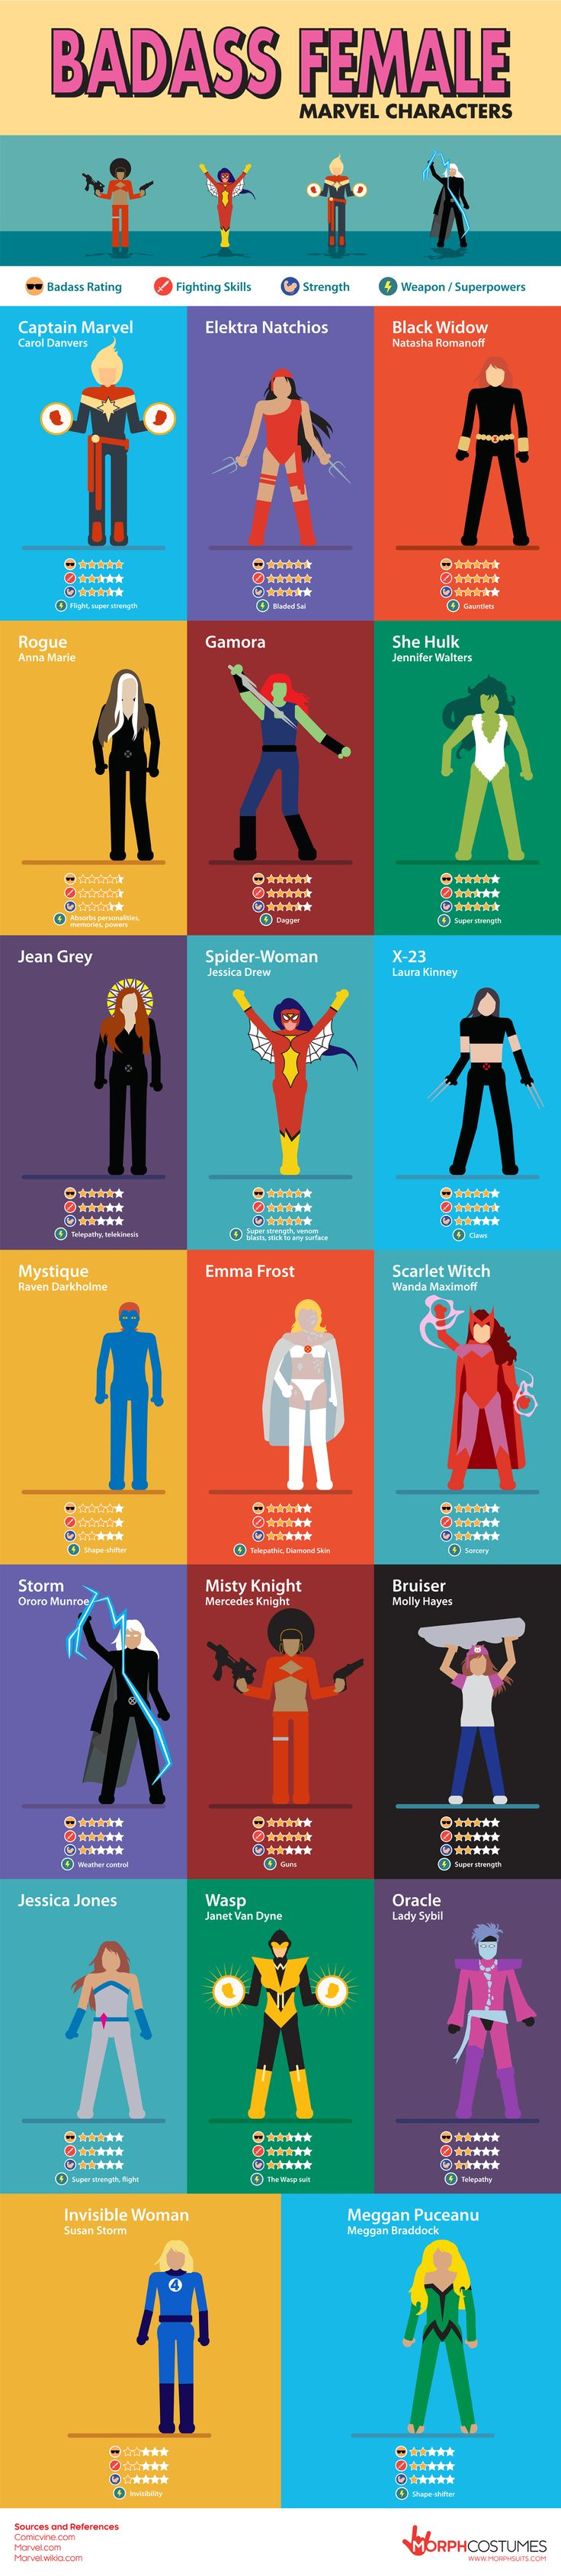 Who's Marvel's most badass female character?